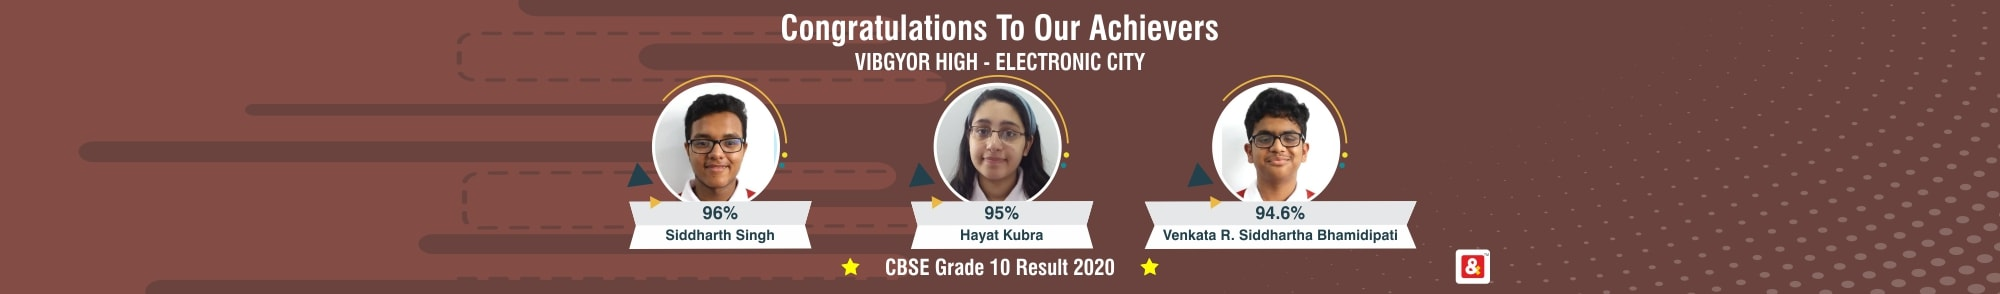 VIBGYOR High School in Electronic City CBSE result